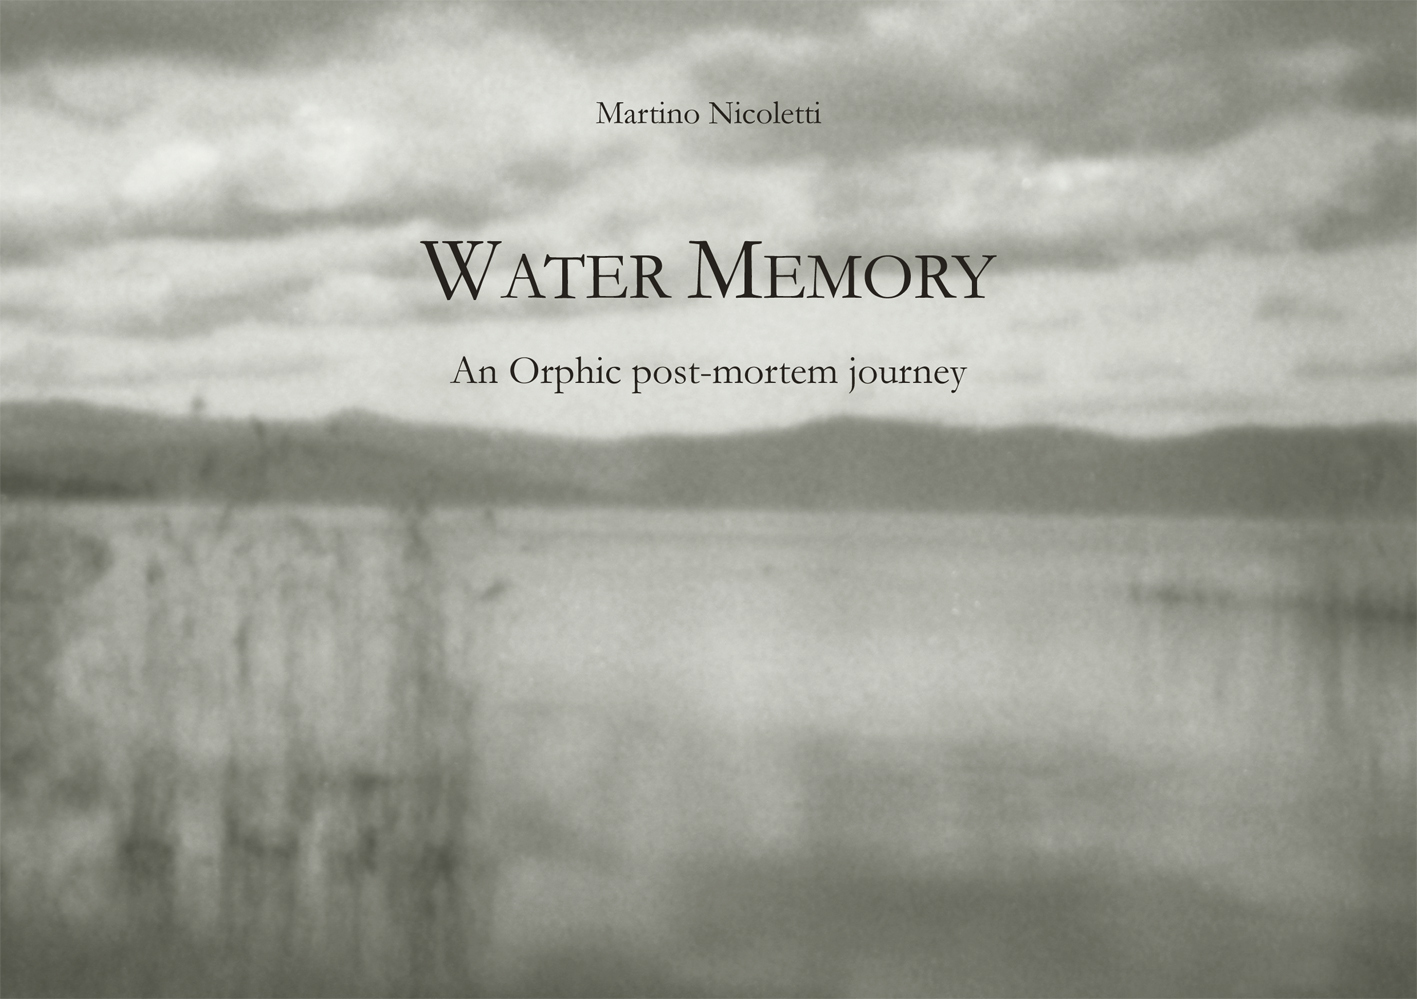 WATER MEMORY: AN ORPHIC POST-MORTEM JOURNEY